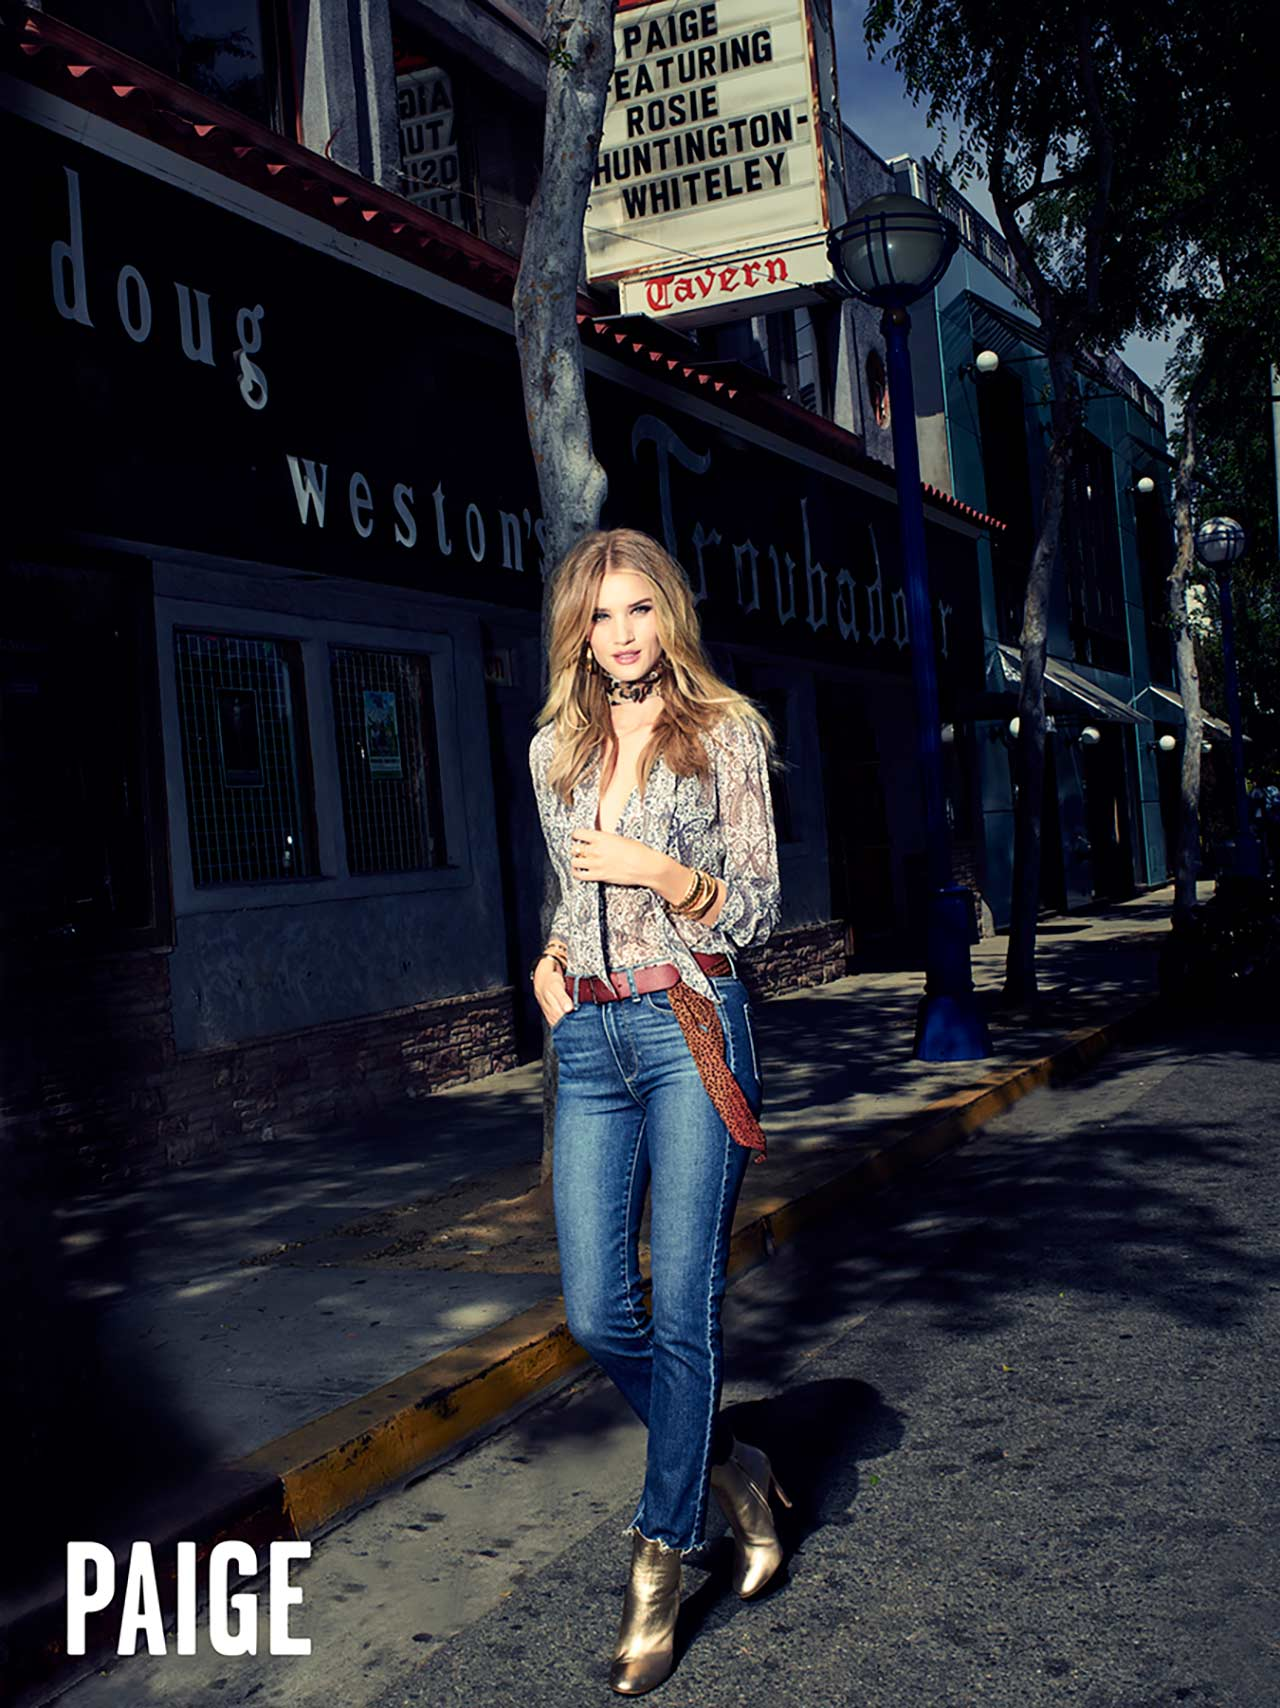 Paige-Rosie-Huntington-Whiteley-Fall16-Insta-Images5